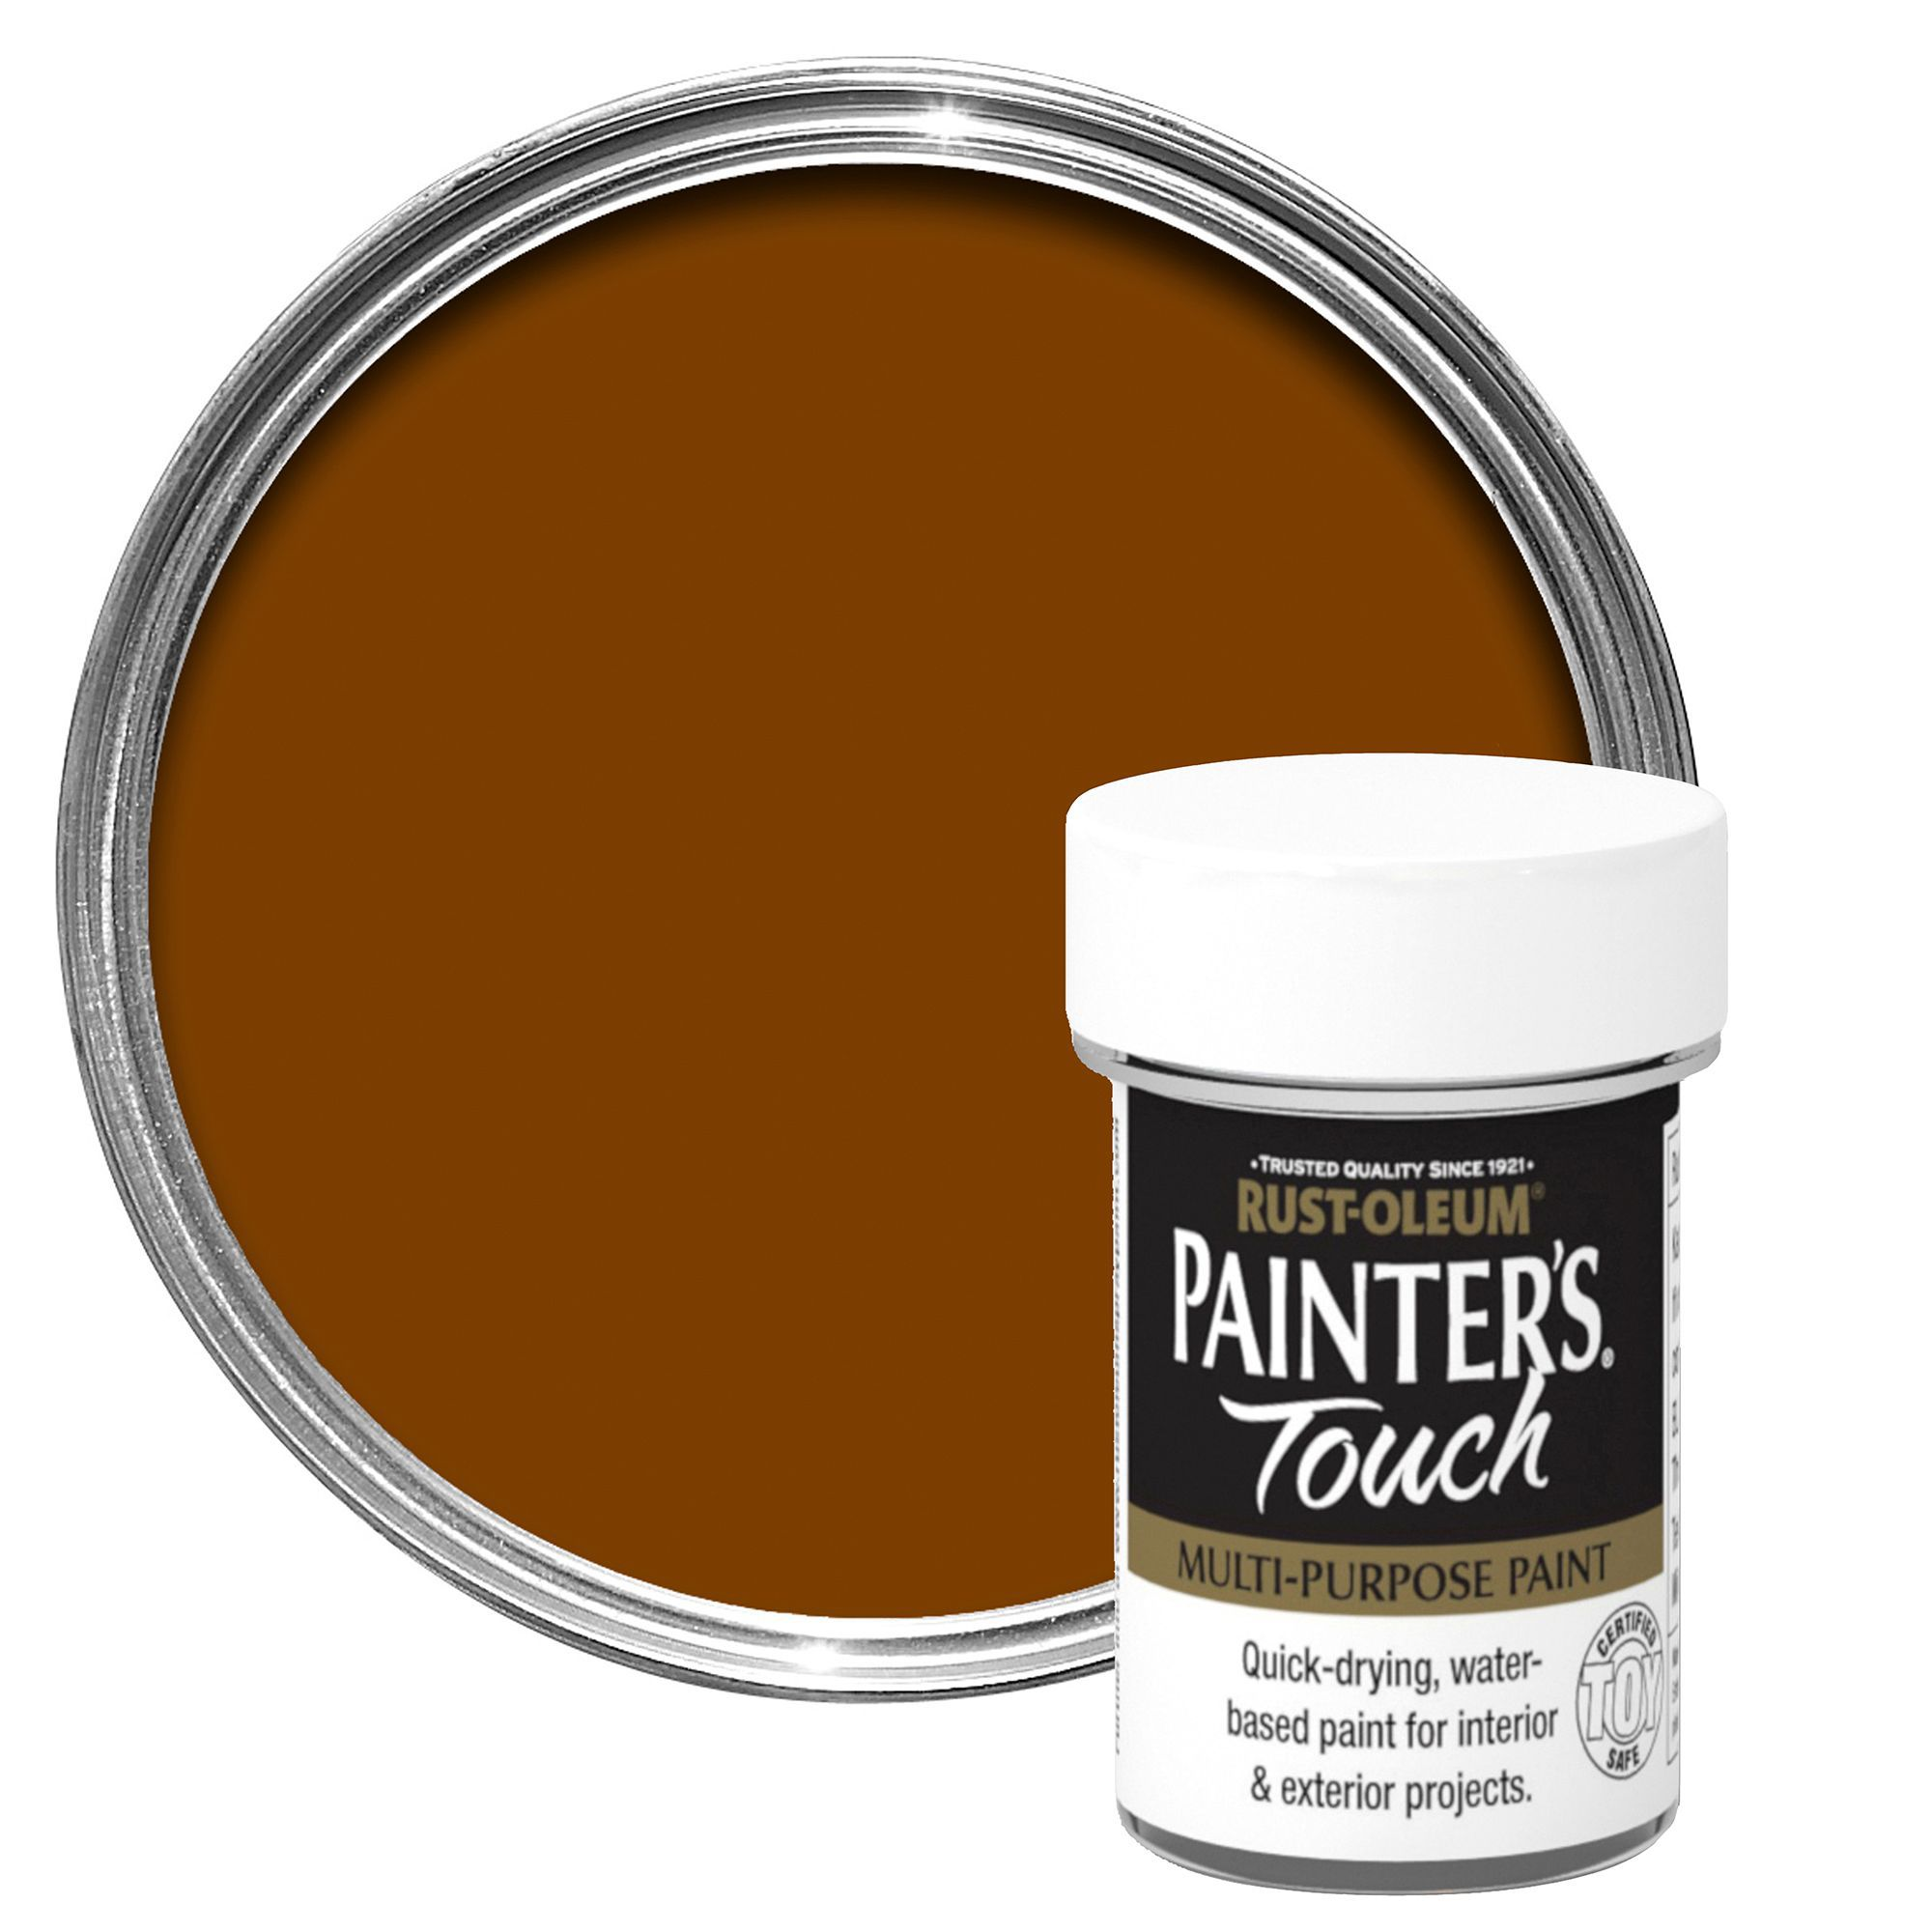 Rust-oleum Painter's Touch Interior & Exterior Bronze Metallic Multipurpose Paint 20ml